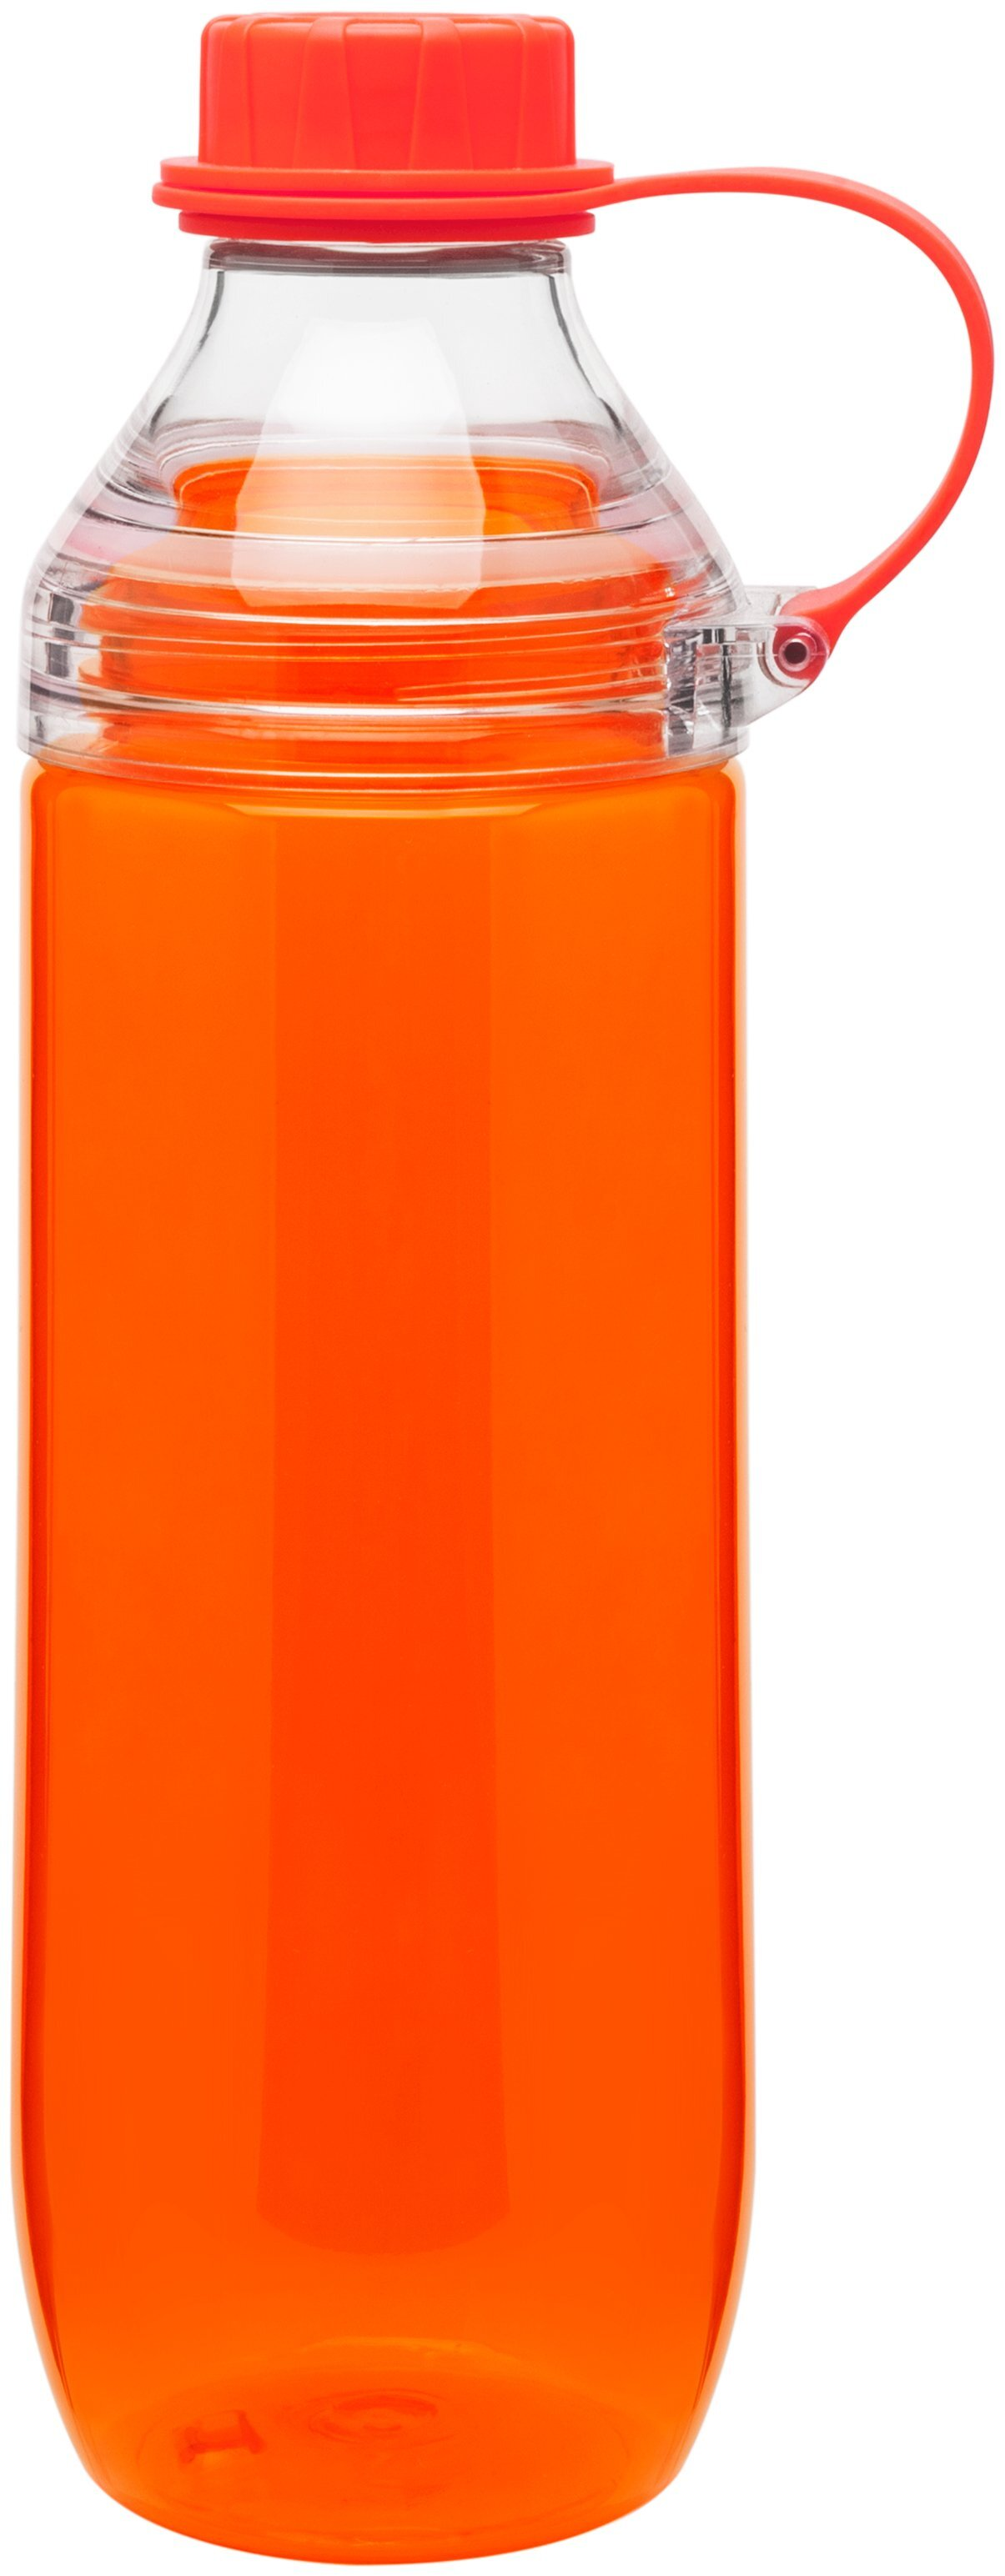 h2go Core Tritan Bottle with Strainer, 25oz. - Free Set Up Charges!